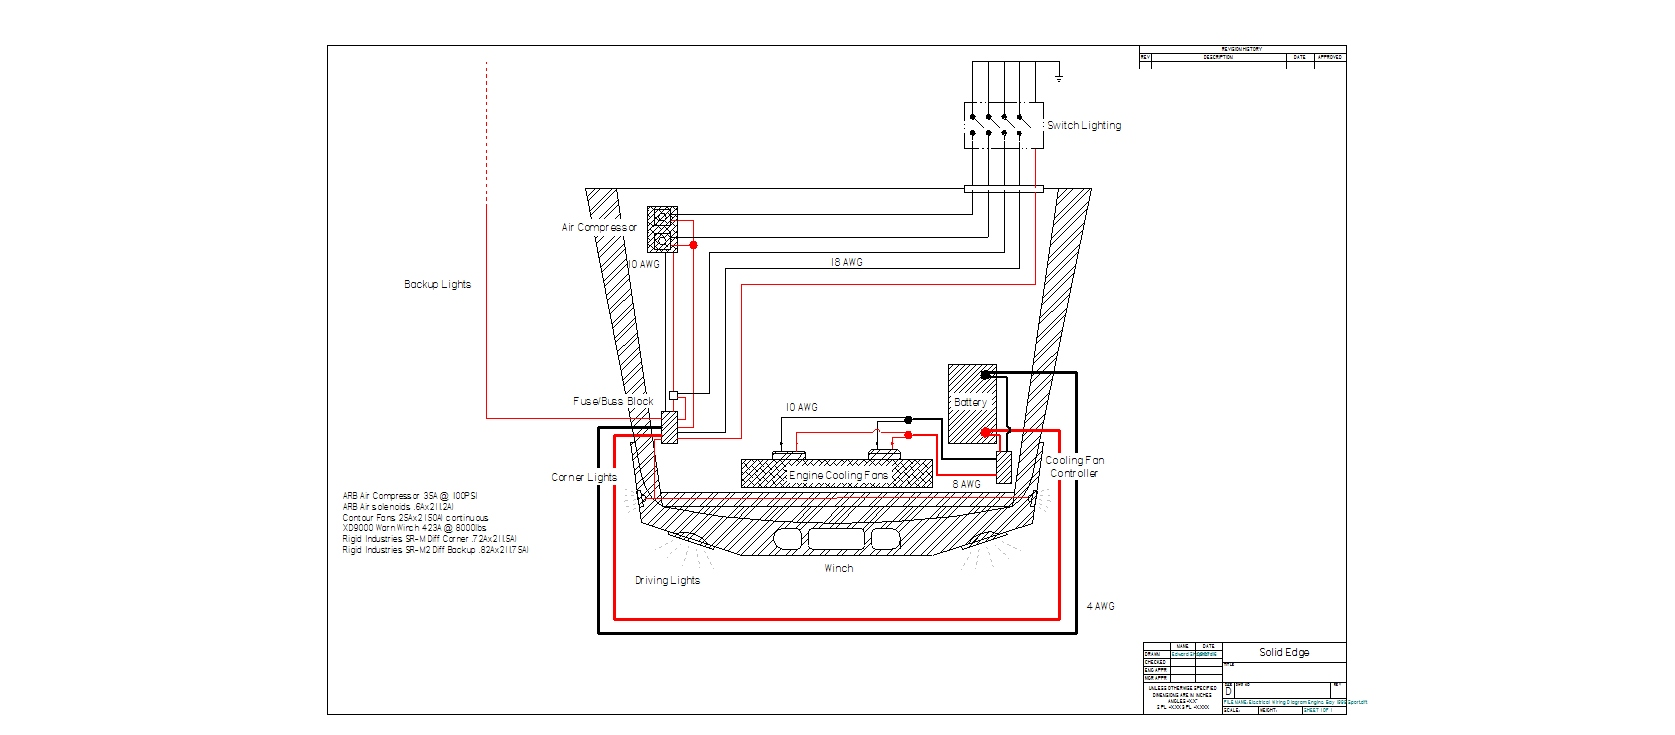 Arb Air Locker Compressor Switch Wiring Diagram 57 Chevy